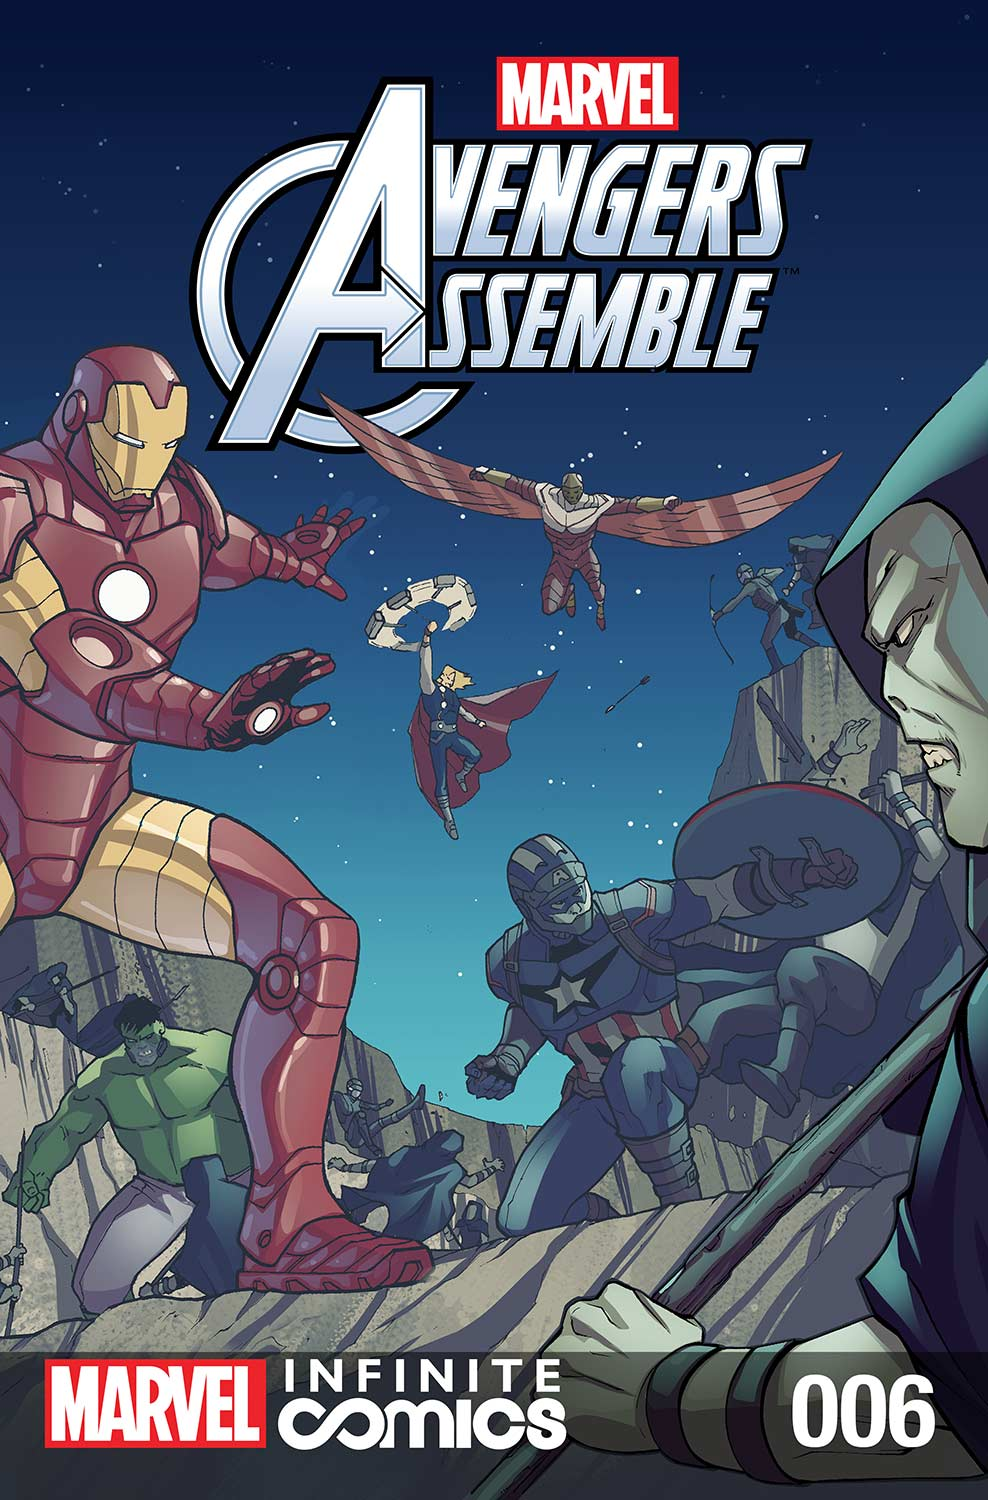 Marvel Universe Avengers Infinite Comic (2016) #6